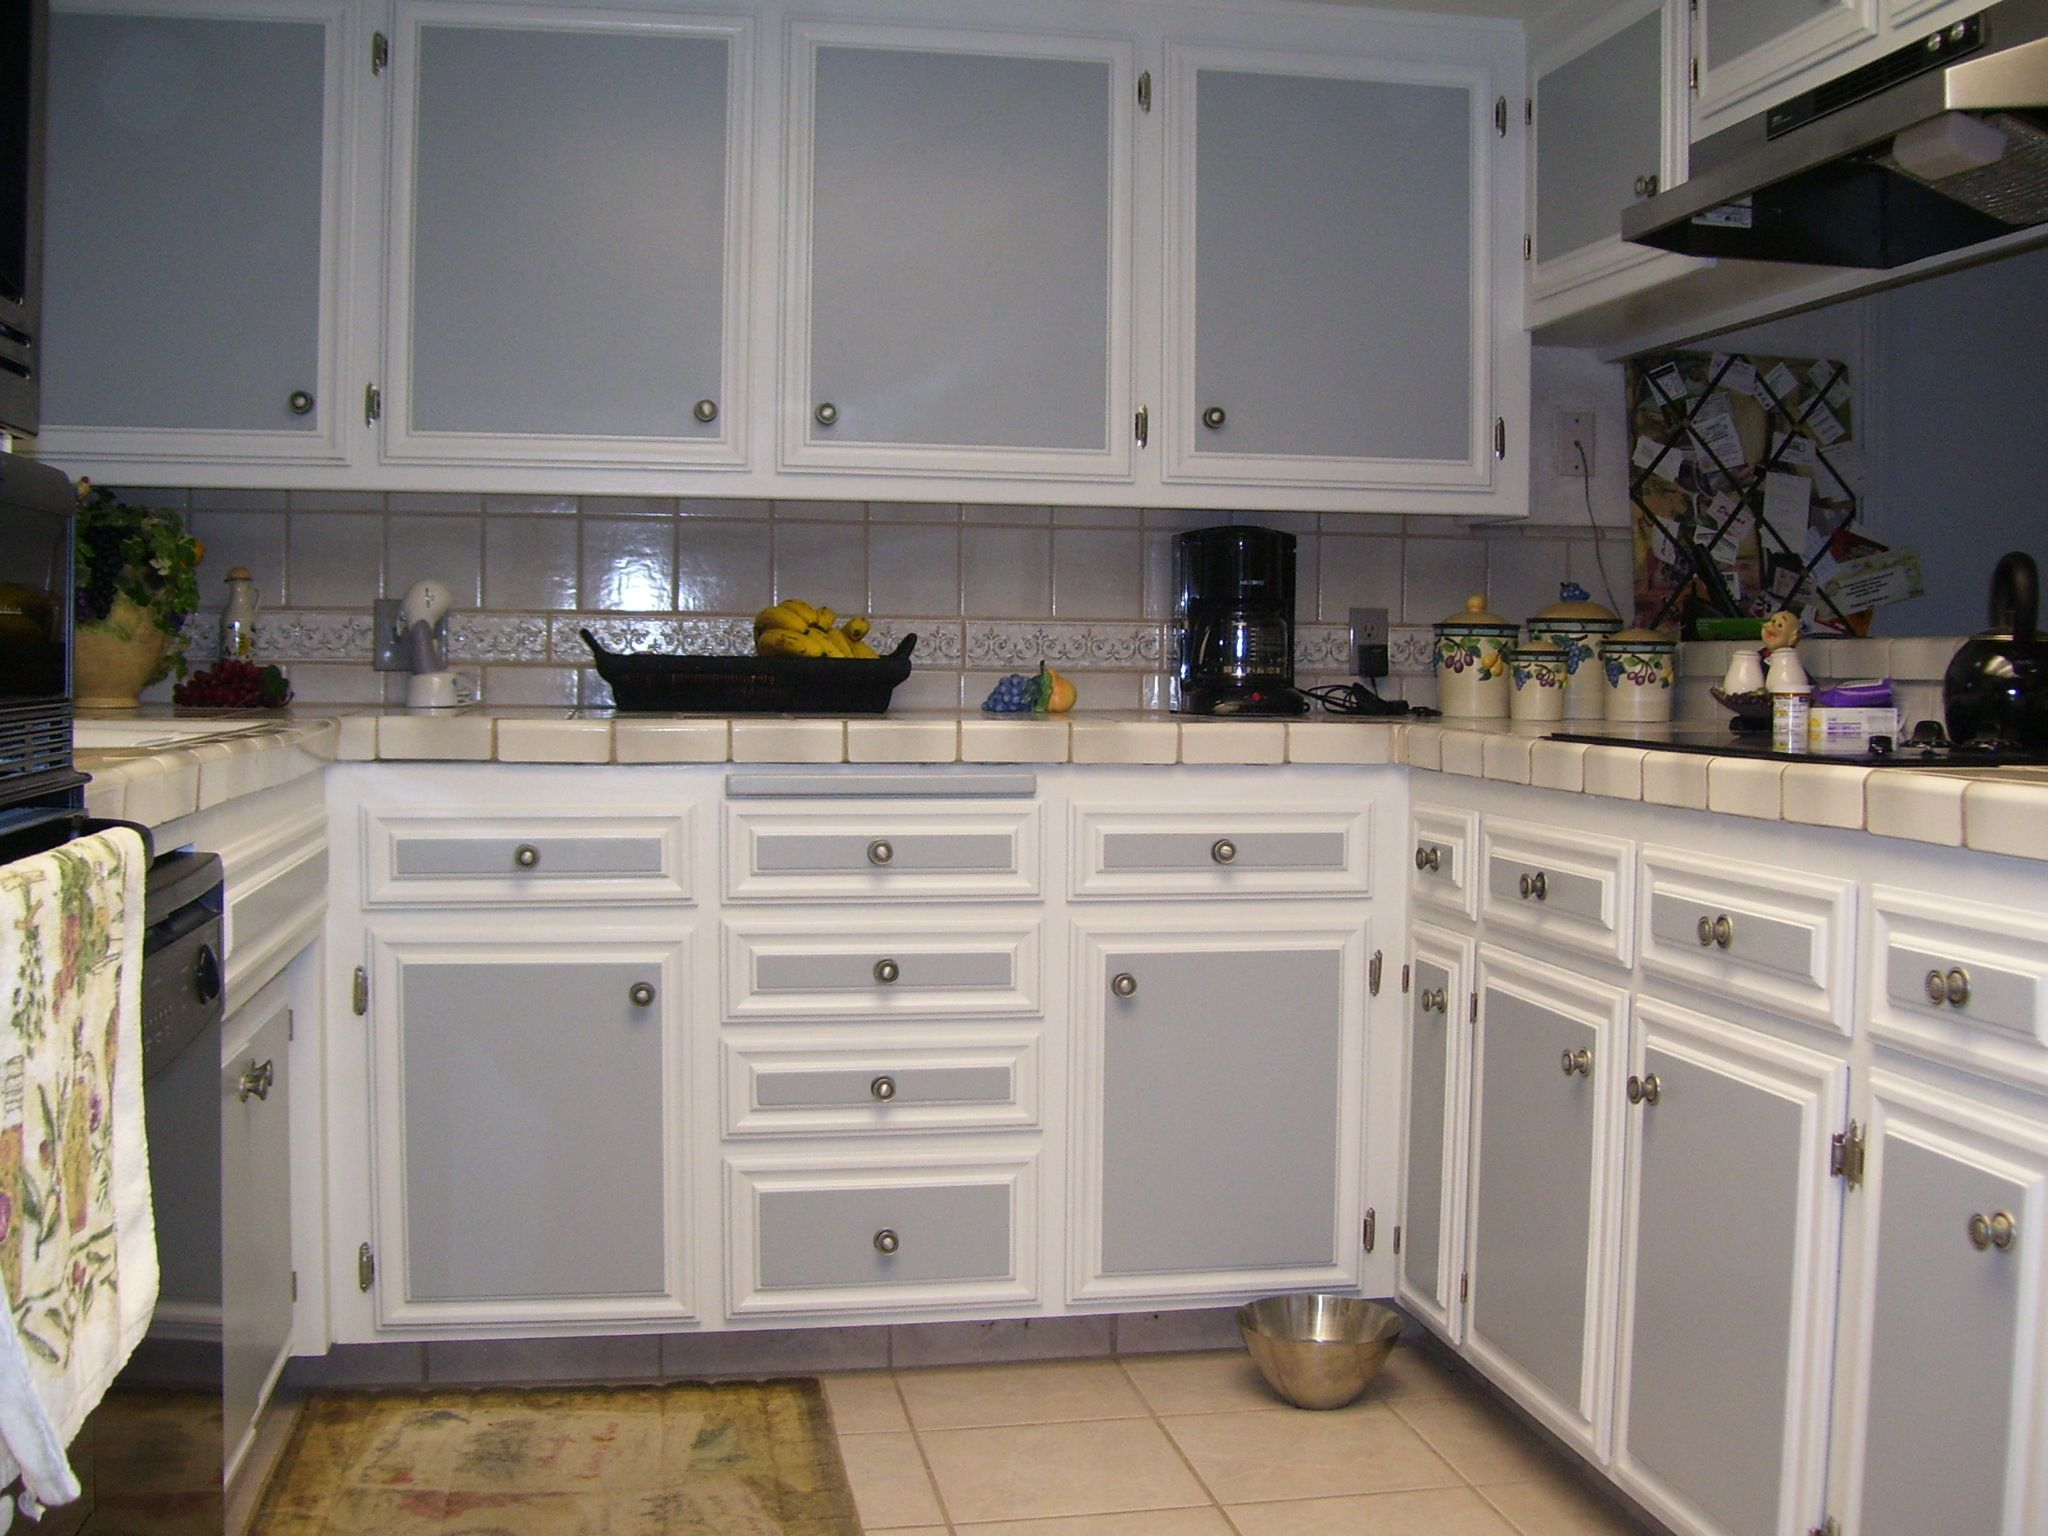 two tone kitchen cabinets Incridible White And Gray Two Tone Kitchen Cabinets With White Ceramic Subway Tiled Backsplash As Well As White Countertop In Small Kitchen Designs